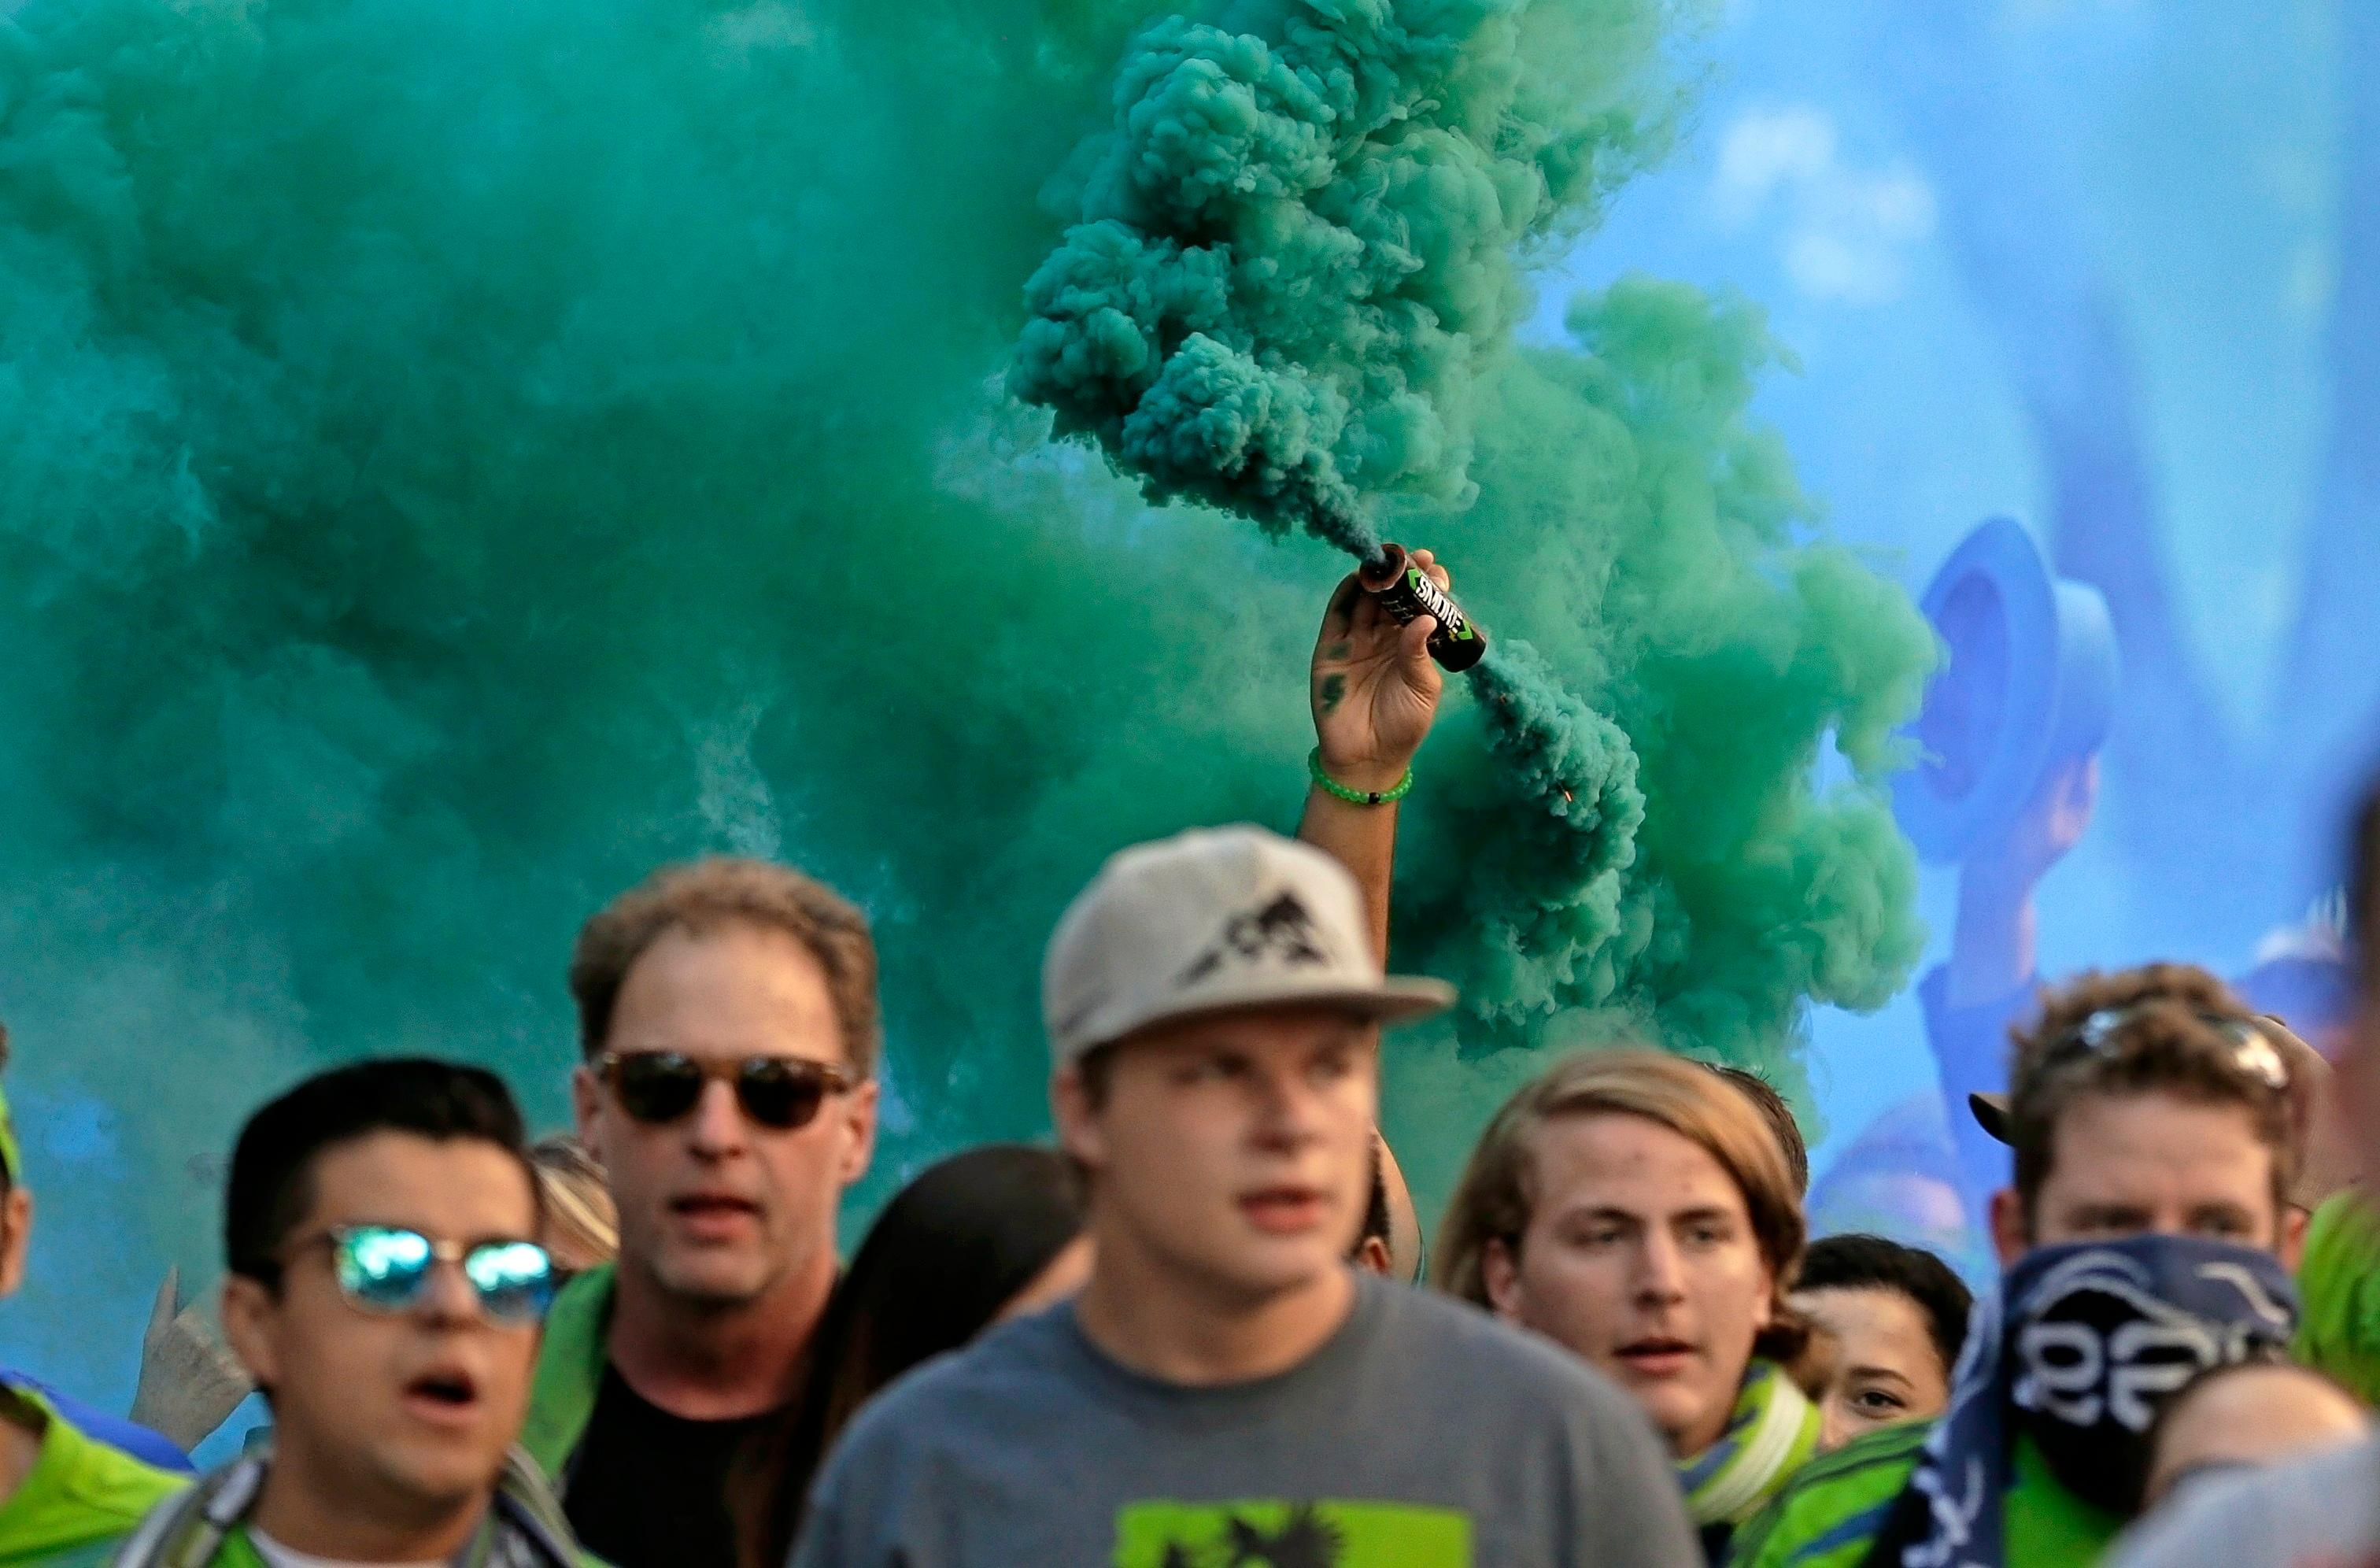 Members of the Emerald City Supporters display smoke effects as they take part in the traditional March to the Match before an MLS soccer match between the Seattle Sounders and the Portland Timbers, Sunday, Aug. 27, 2017, in Seattle. (AP Photo/Ted S. Warren)